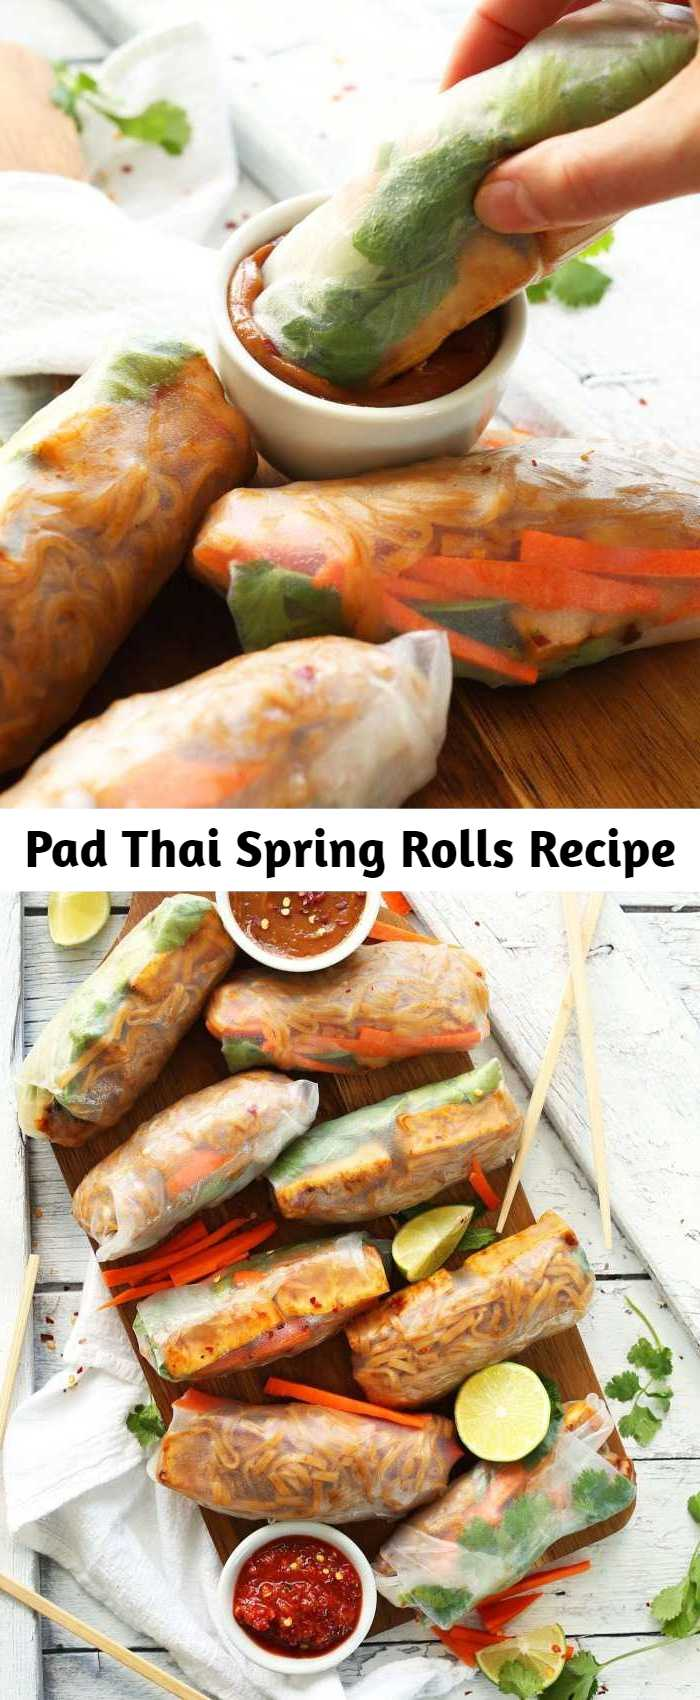 Pad Thai Spring Rolls Recipe - Amazing 10-ingredient pad Thai spring rolls with spicy-sweet noodles, crispy baked tofu, and fresh carrots and herbs! A healthier vegan, gluten free entree.